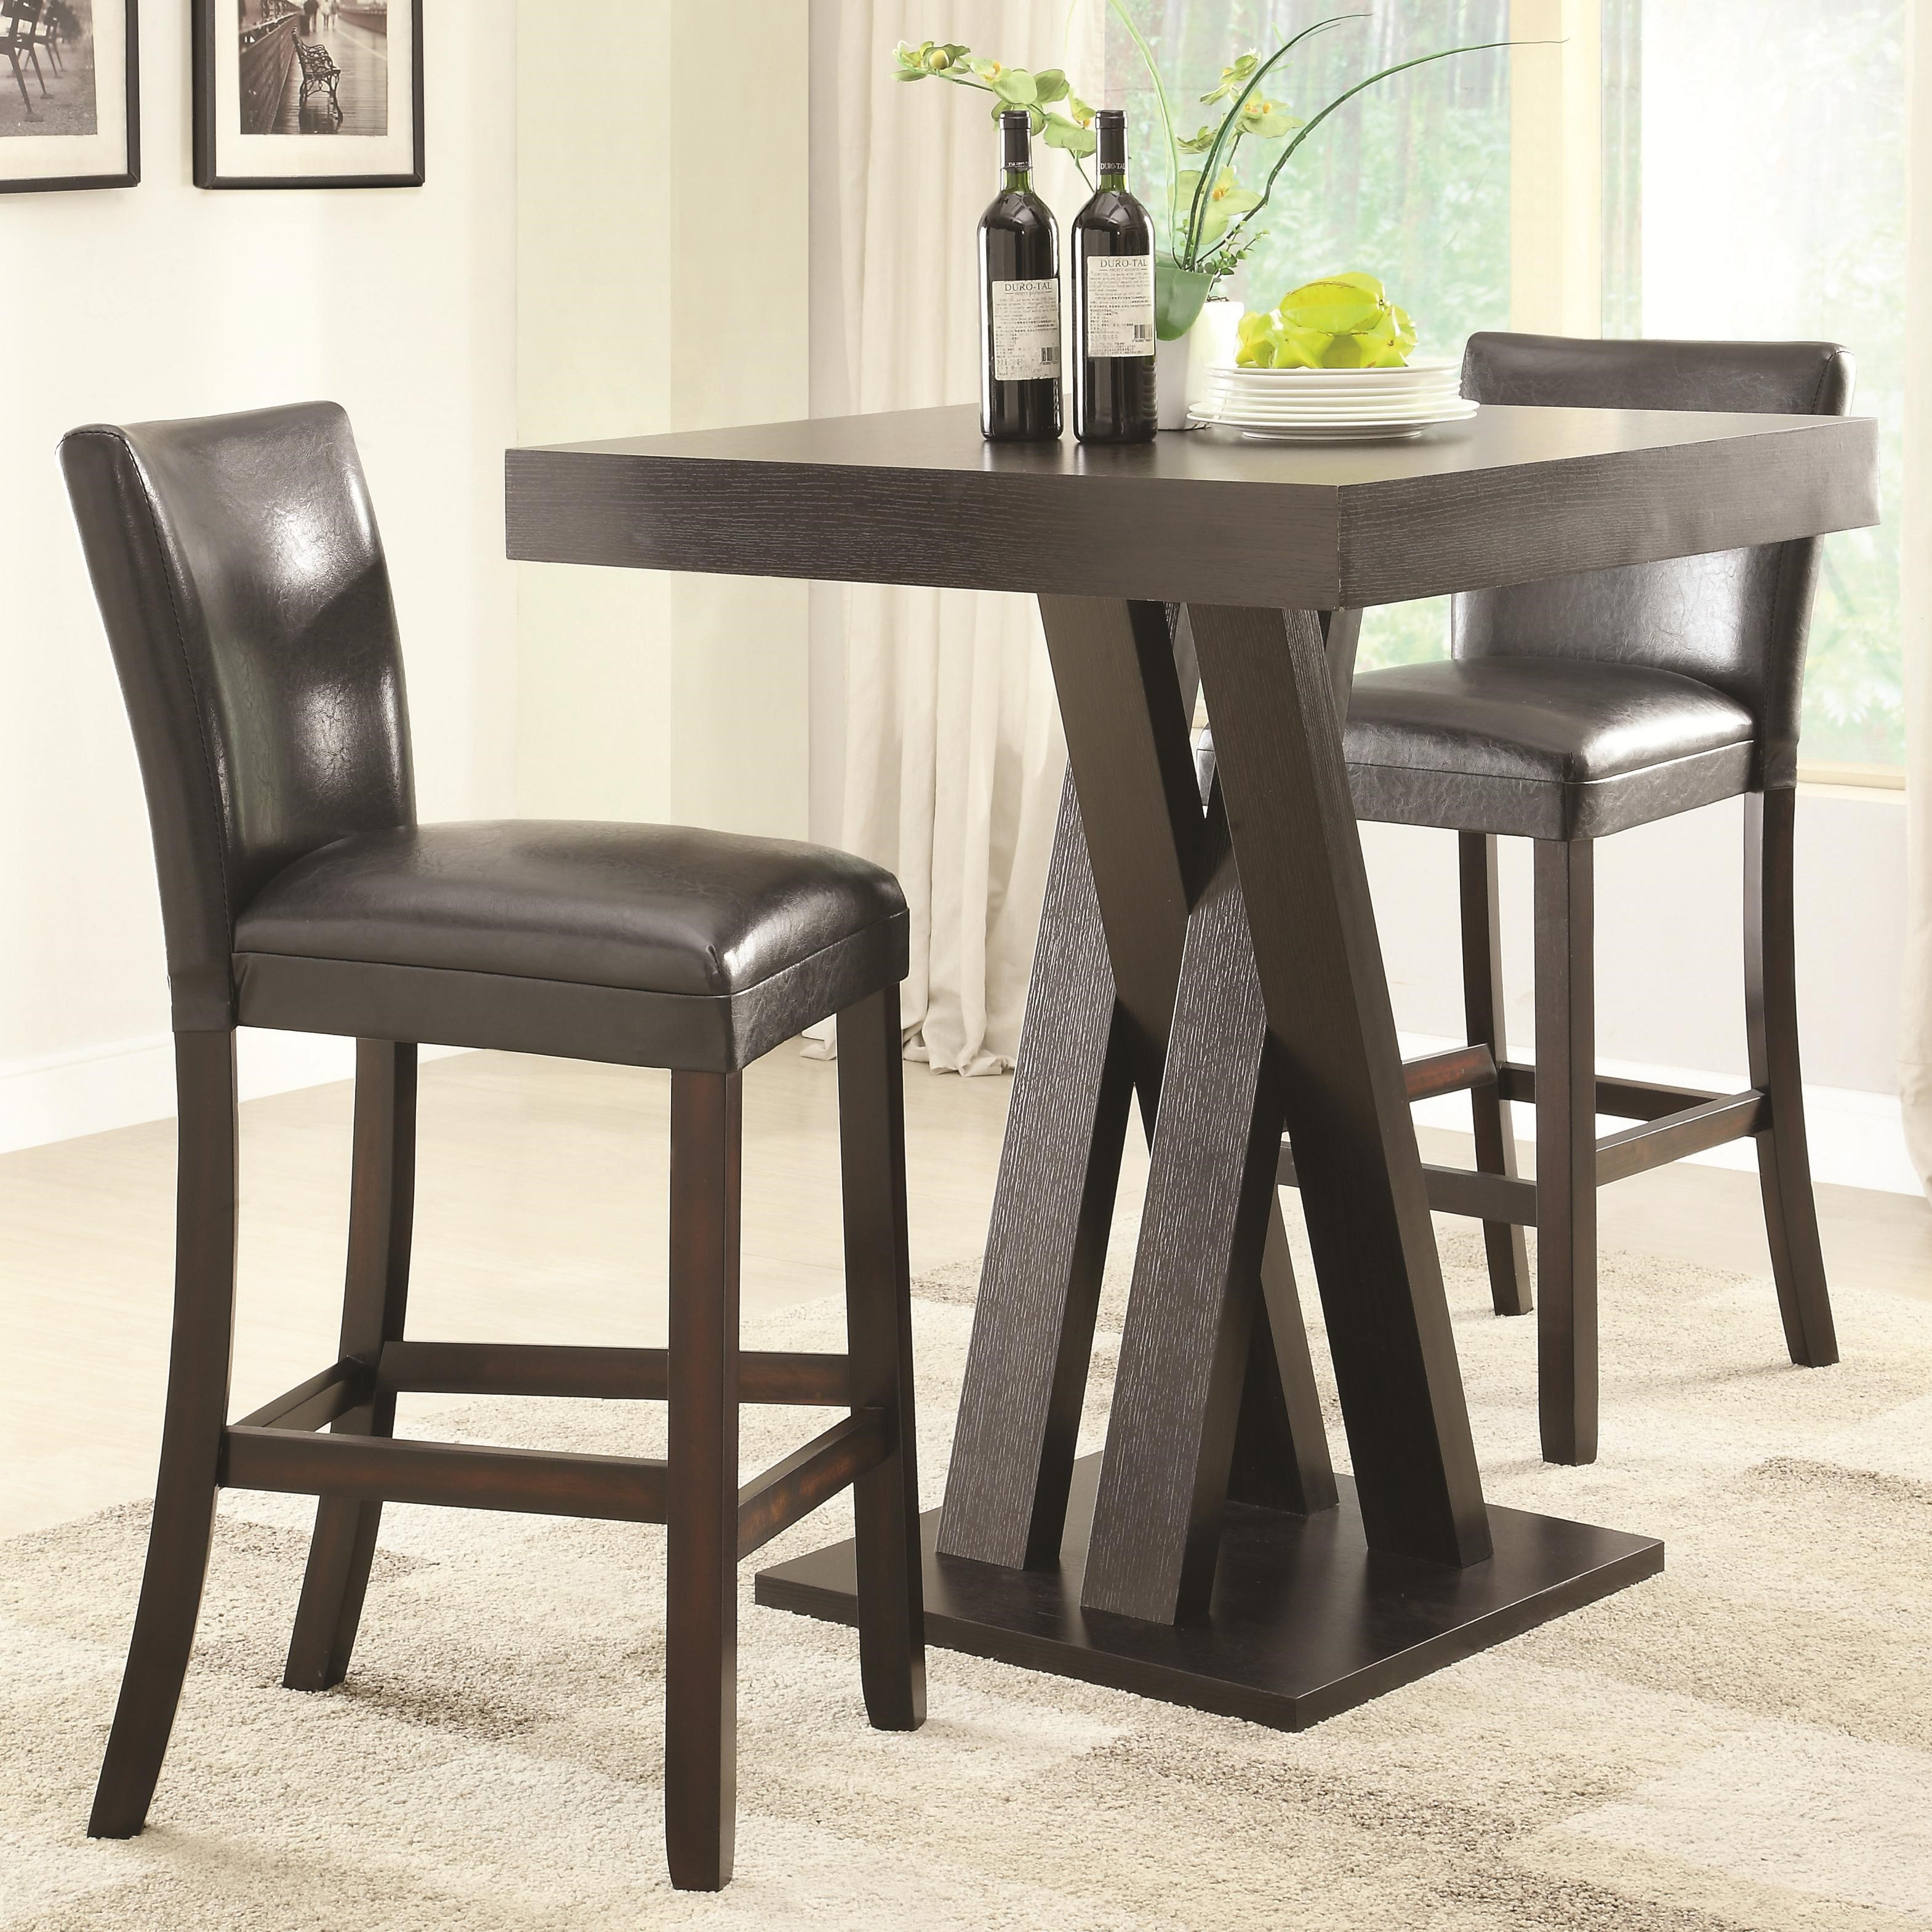 Coaster Bar Units and Bar Tables Three Piece Bar Height Table and Stools Set - Coaster Fine Furniture & Coaster Bar Units and Bar Tables Three Piece Bar Height Table and ...